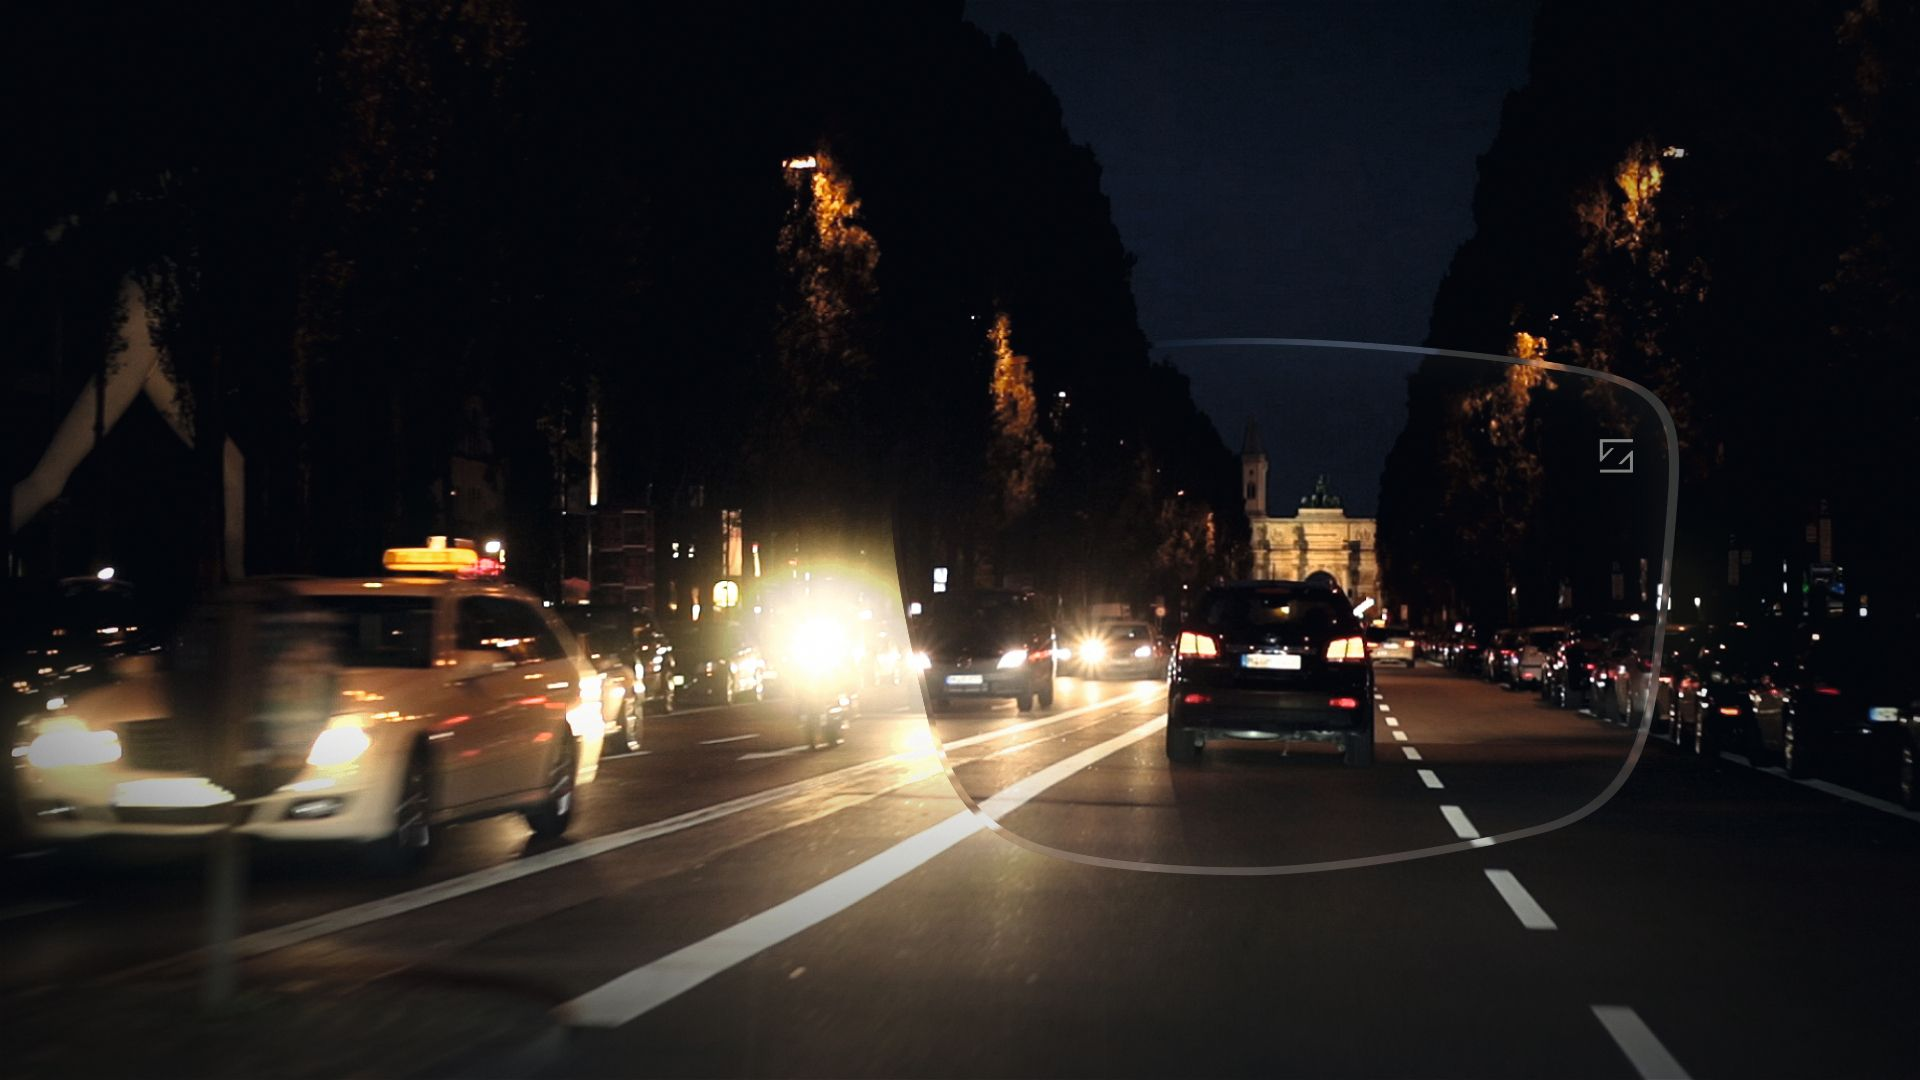 ZEISS Makes Car Driving Safer